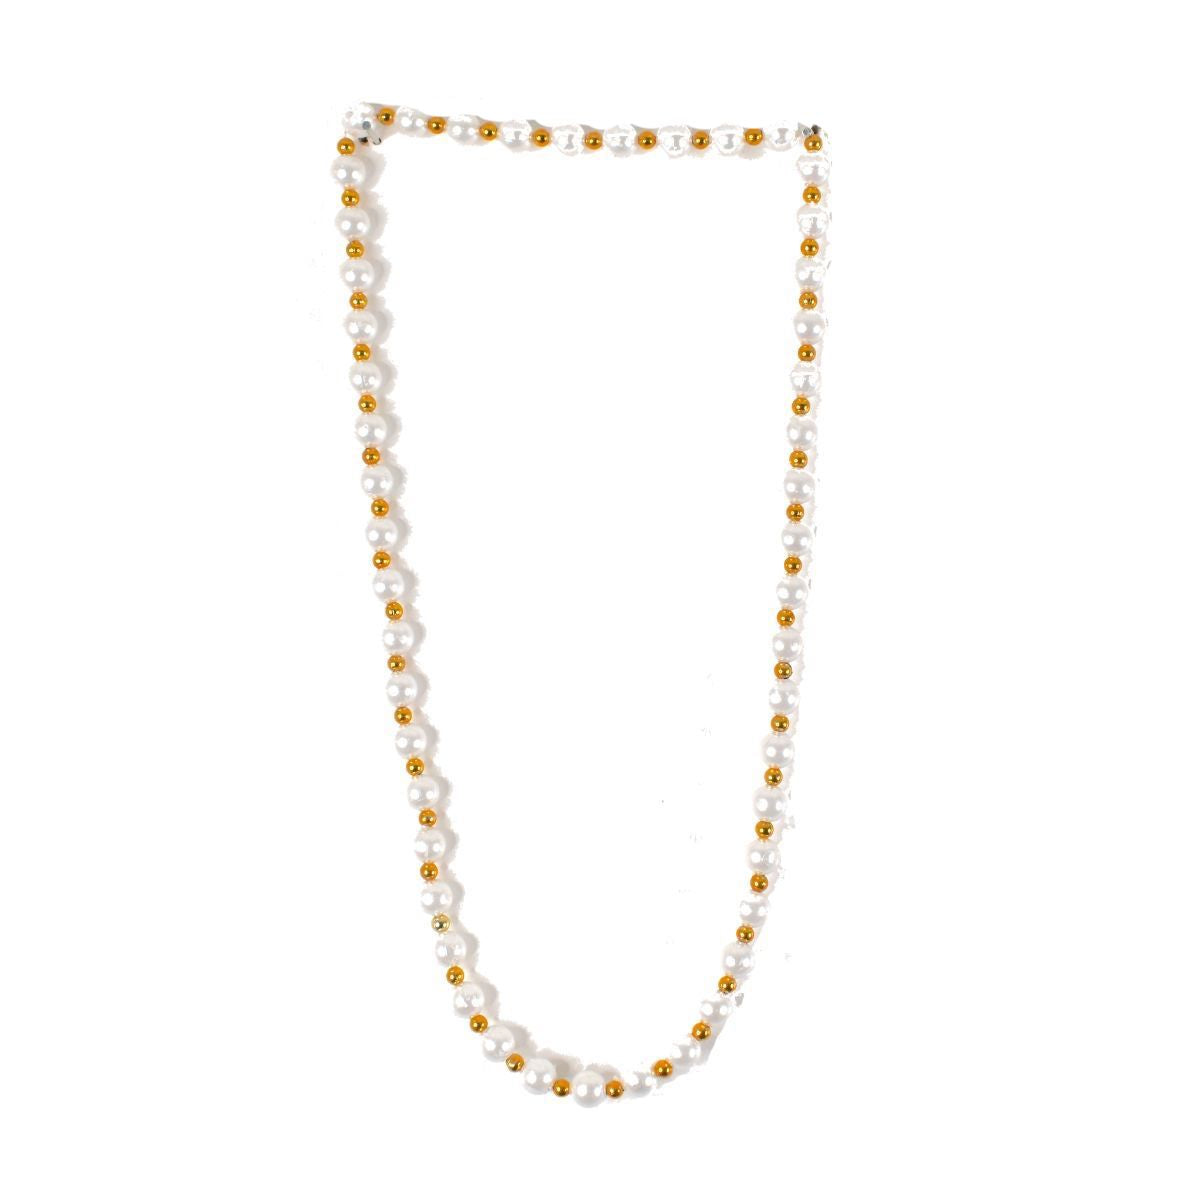 1 x White & Gold Artificial Pearl Necklace